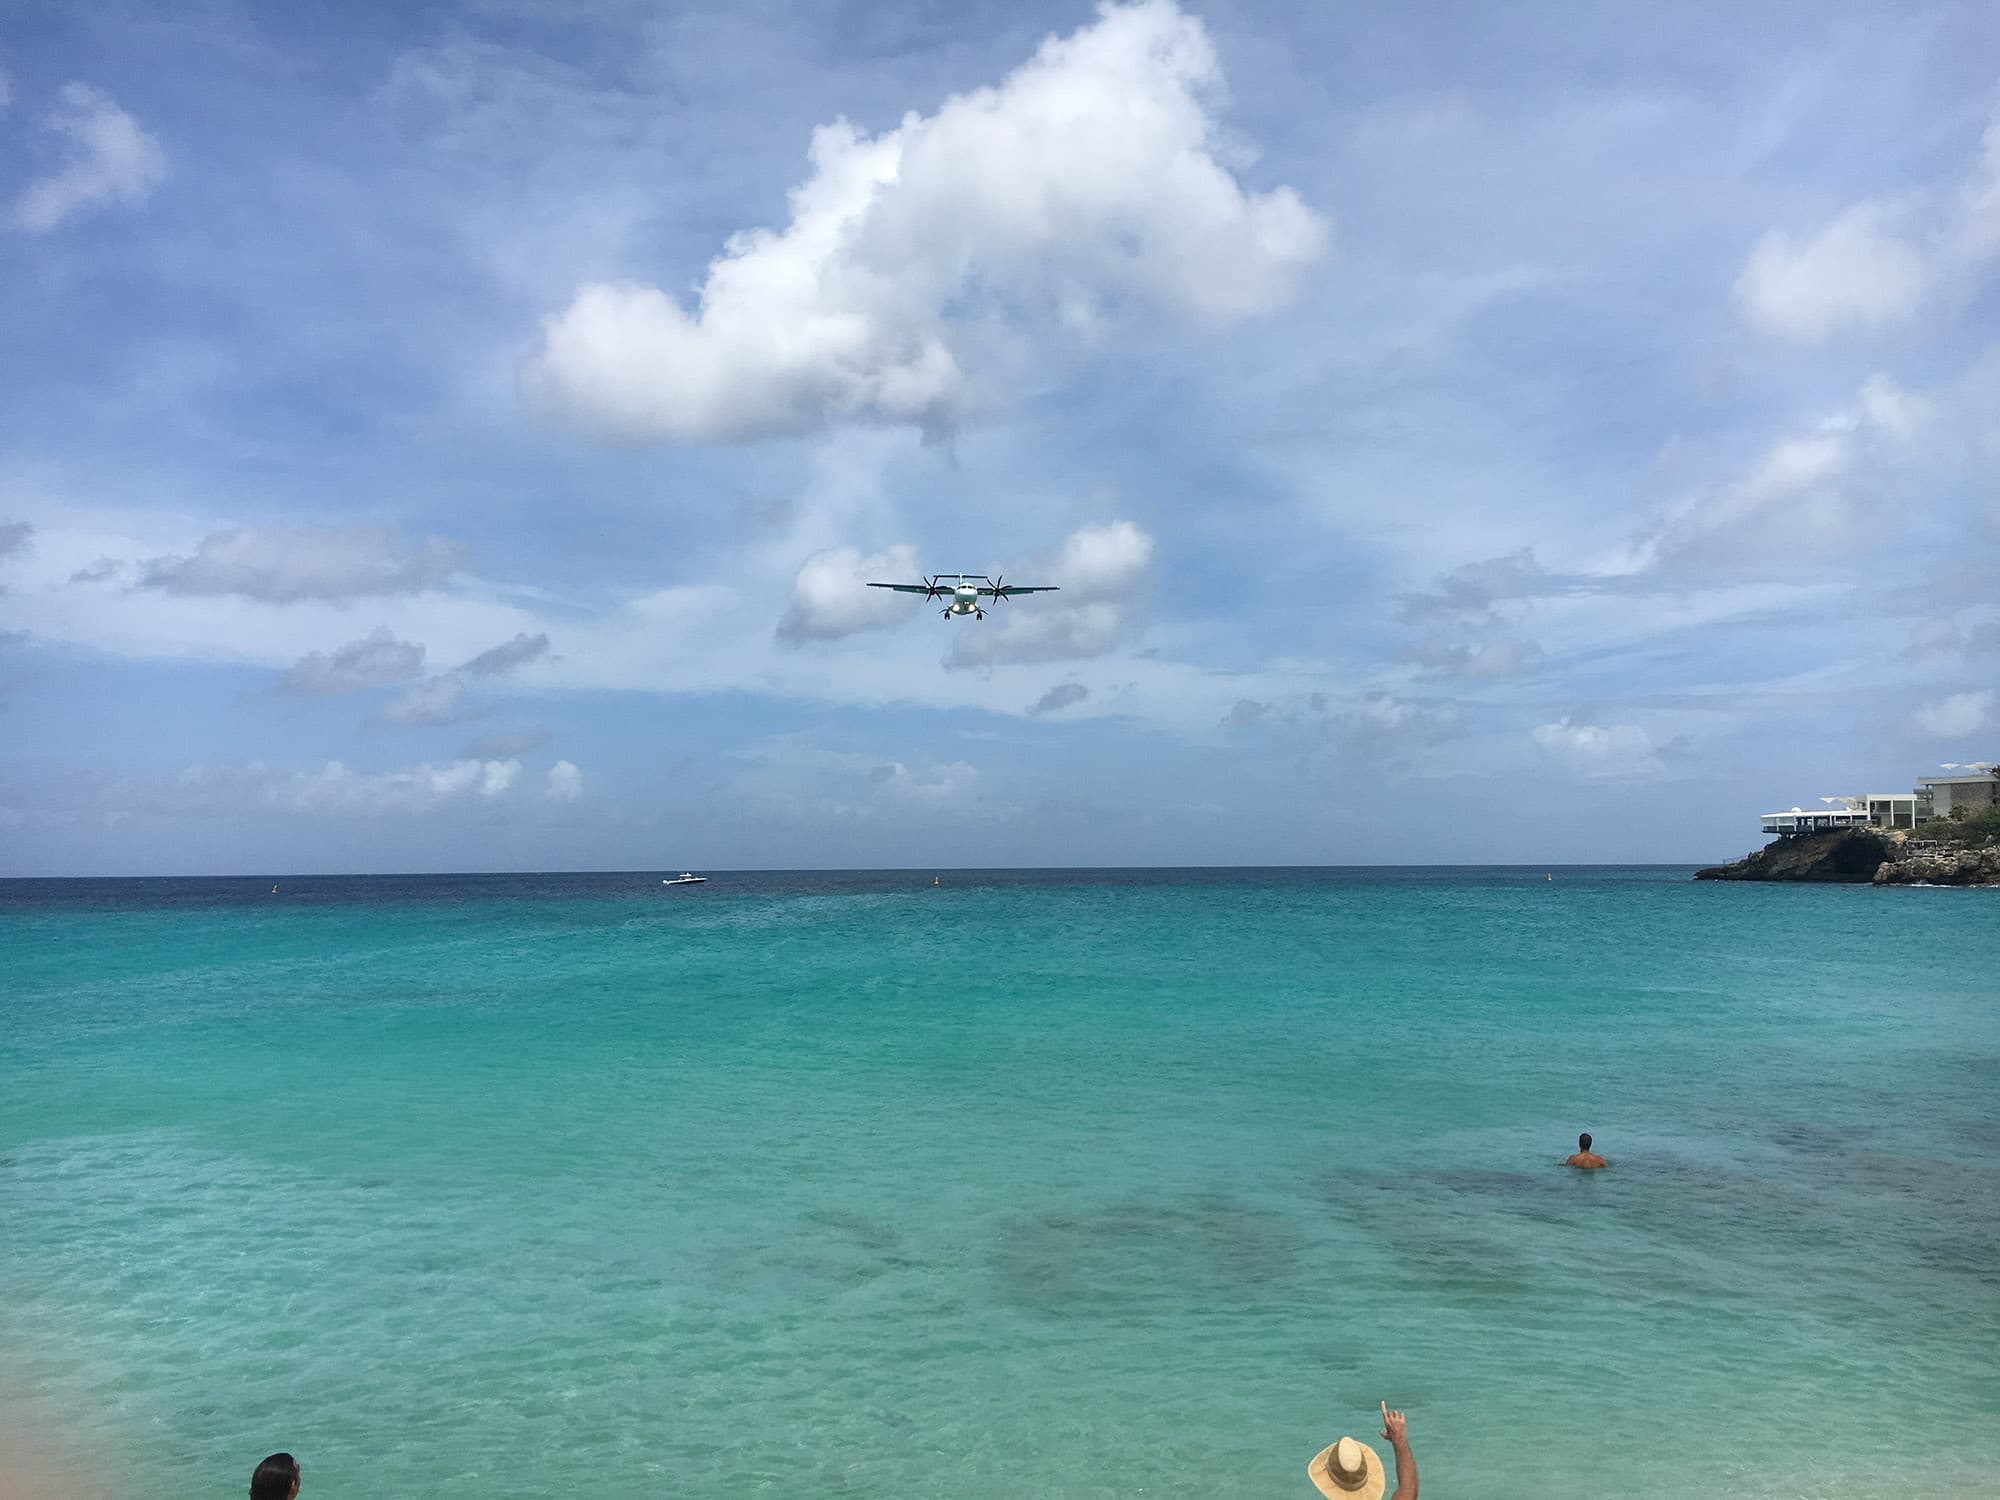 snapseed tutorial, smartphone editing with snapseed | Photo: Maho Beach St Maarten - BEFORE EDITING! | Copyright Karin van Mierlo | Photography Playground